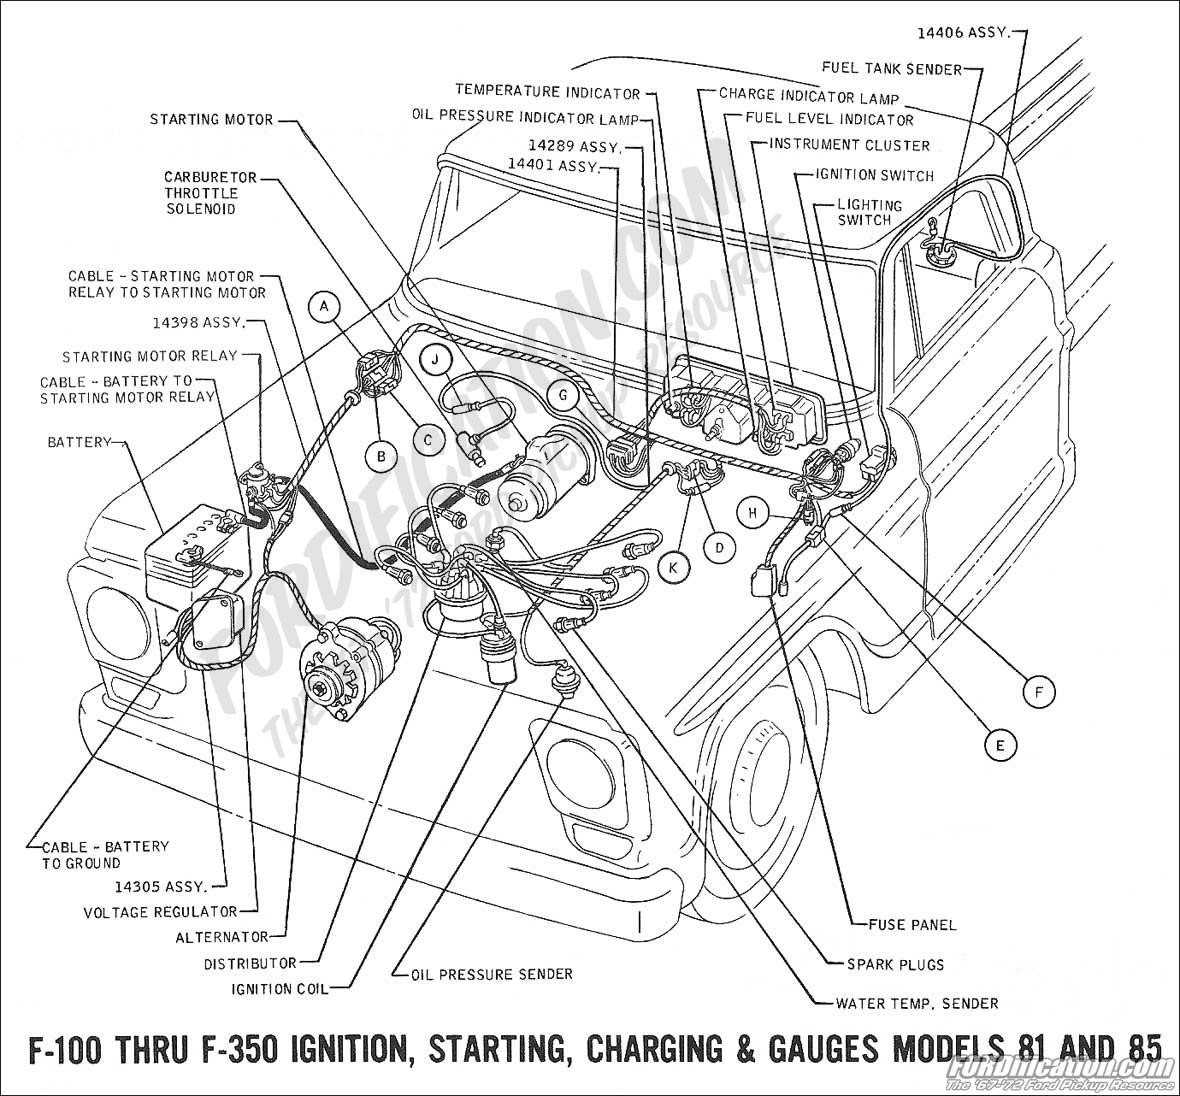 wiring 1969charging ford truck technical drawings and schematics section h wiring 1969 ford f100 wiring diagram at gsmportal.co